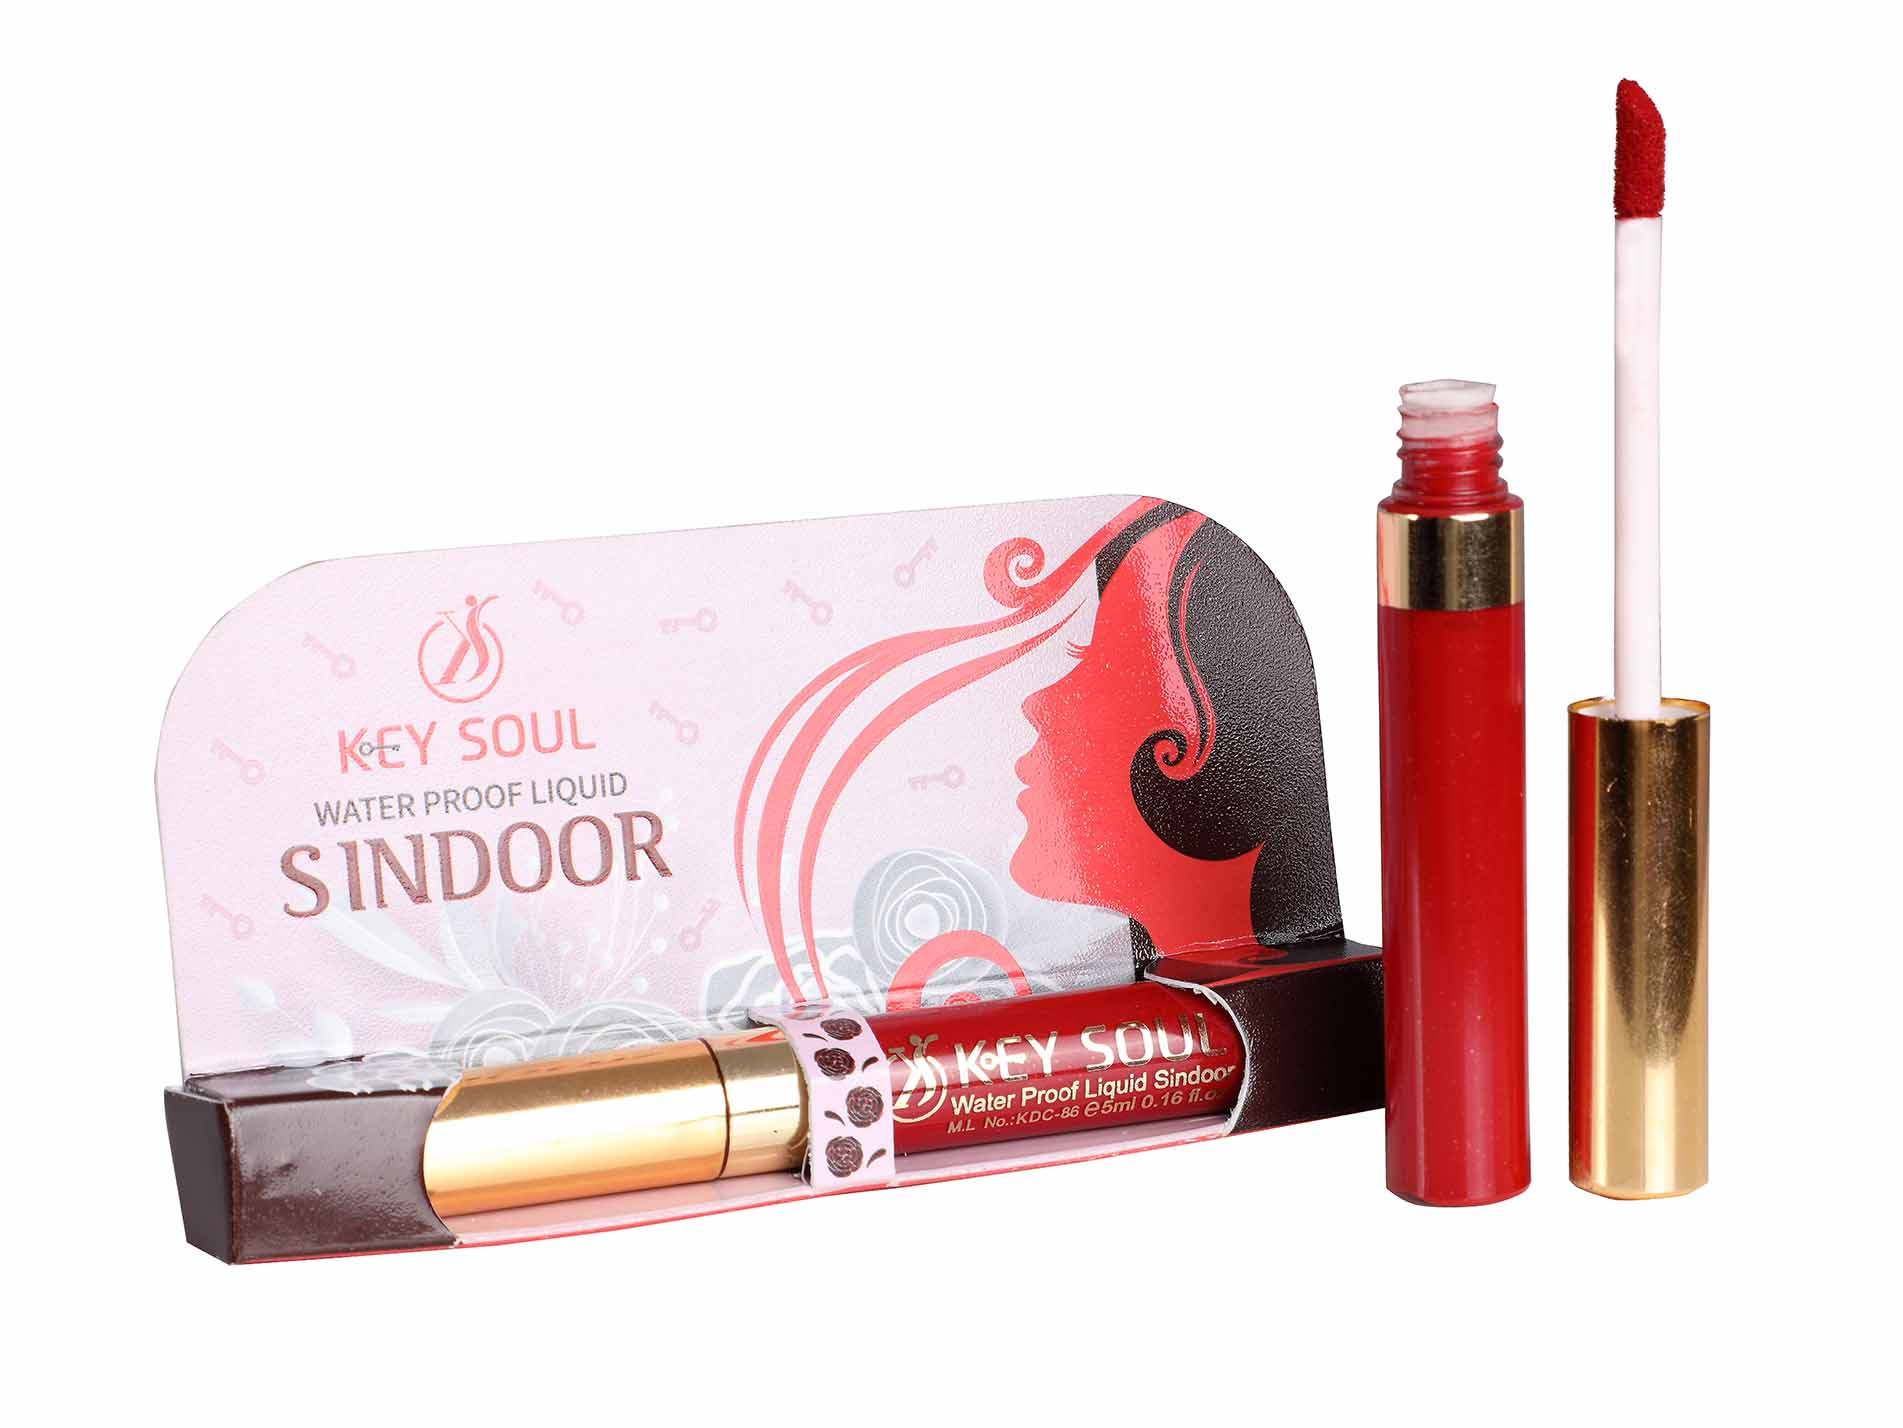 Keysoul Waterproof liquid Sindoor-Red